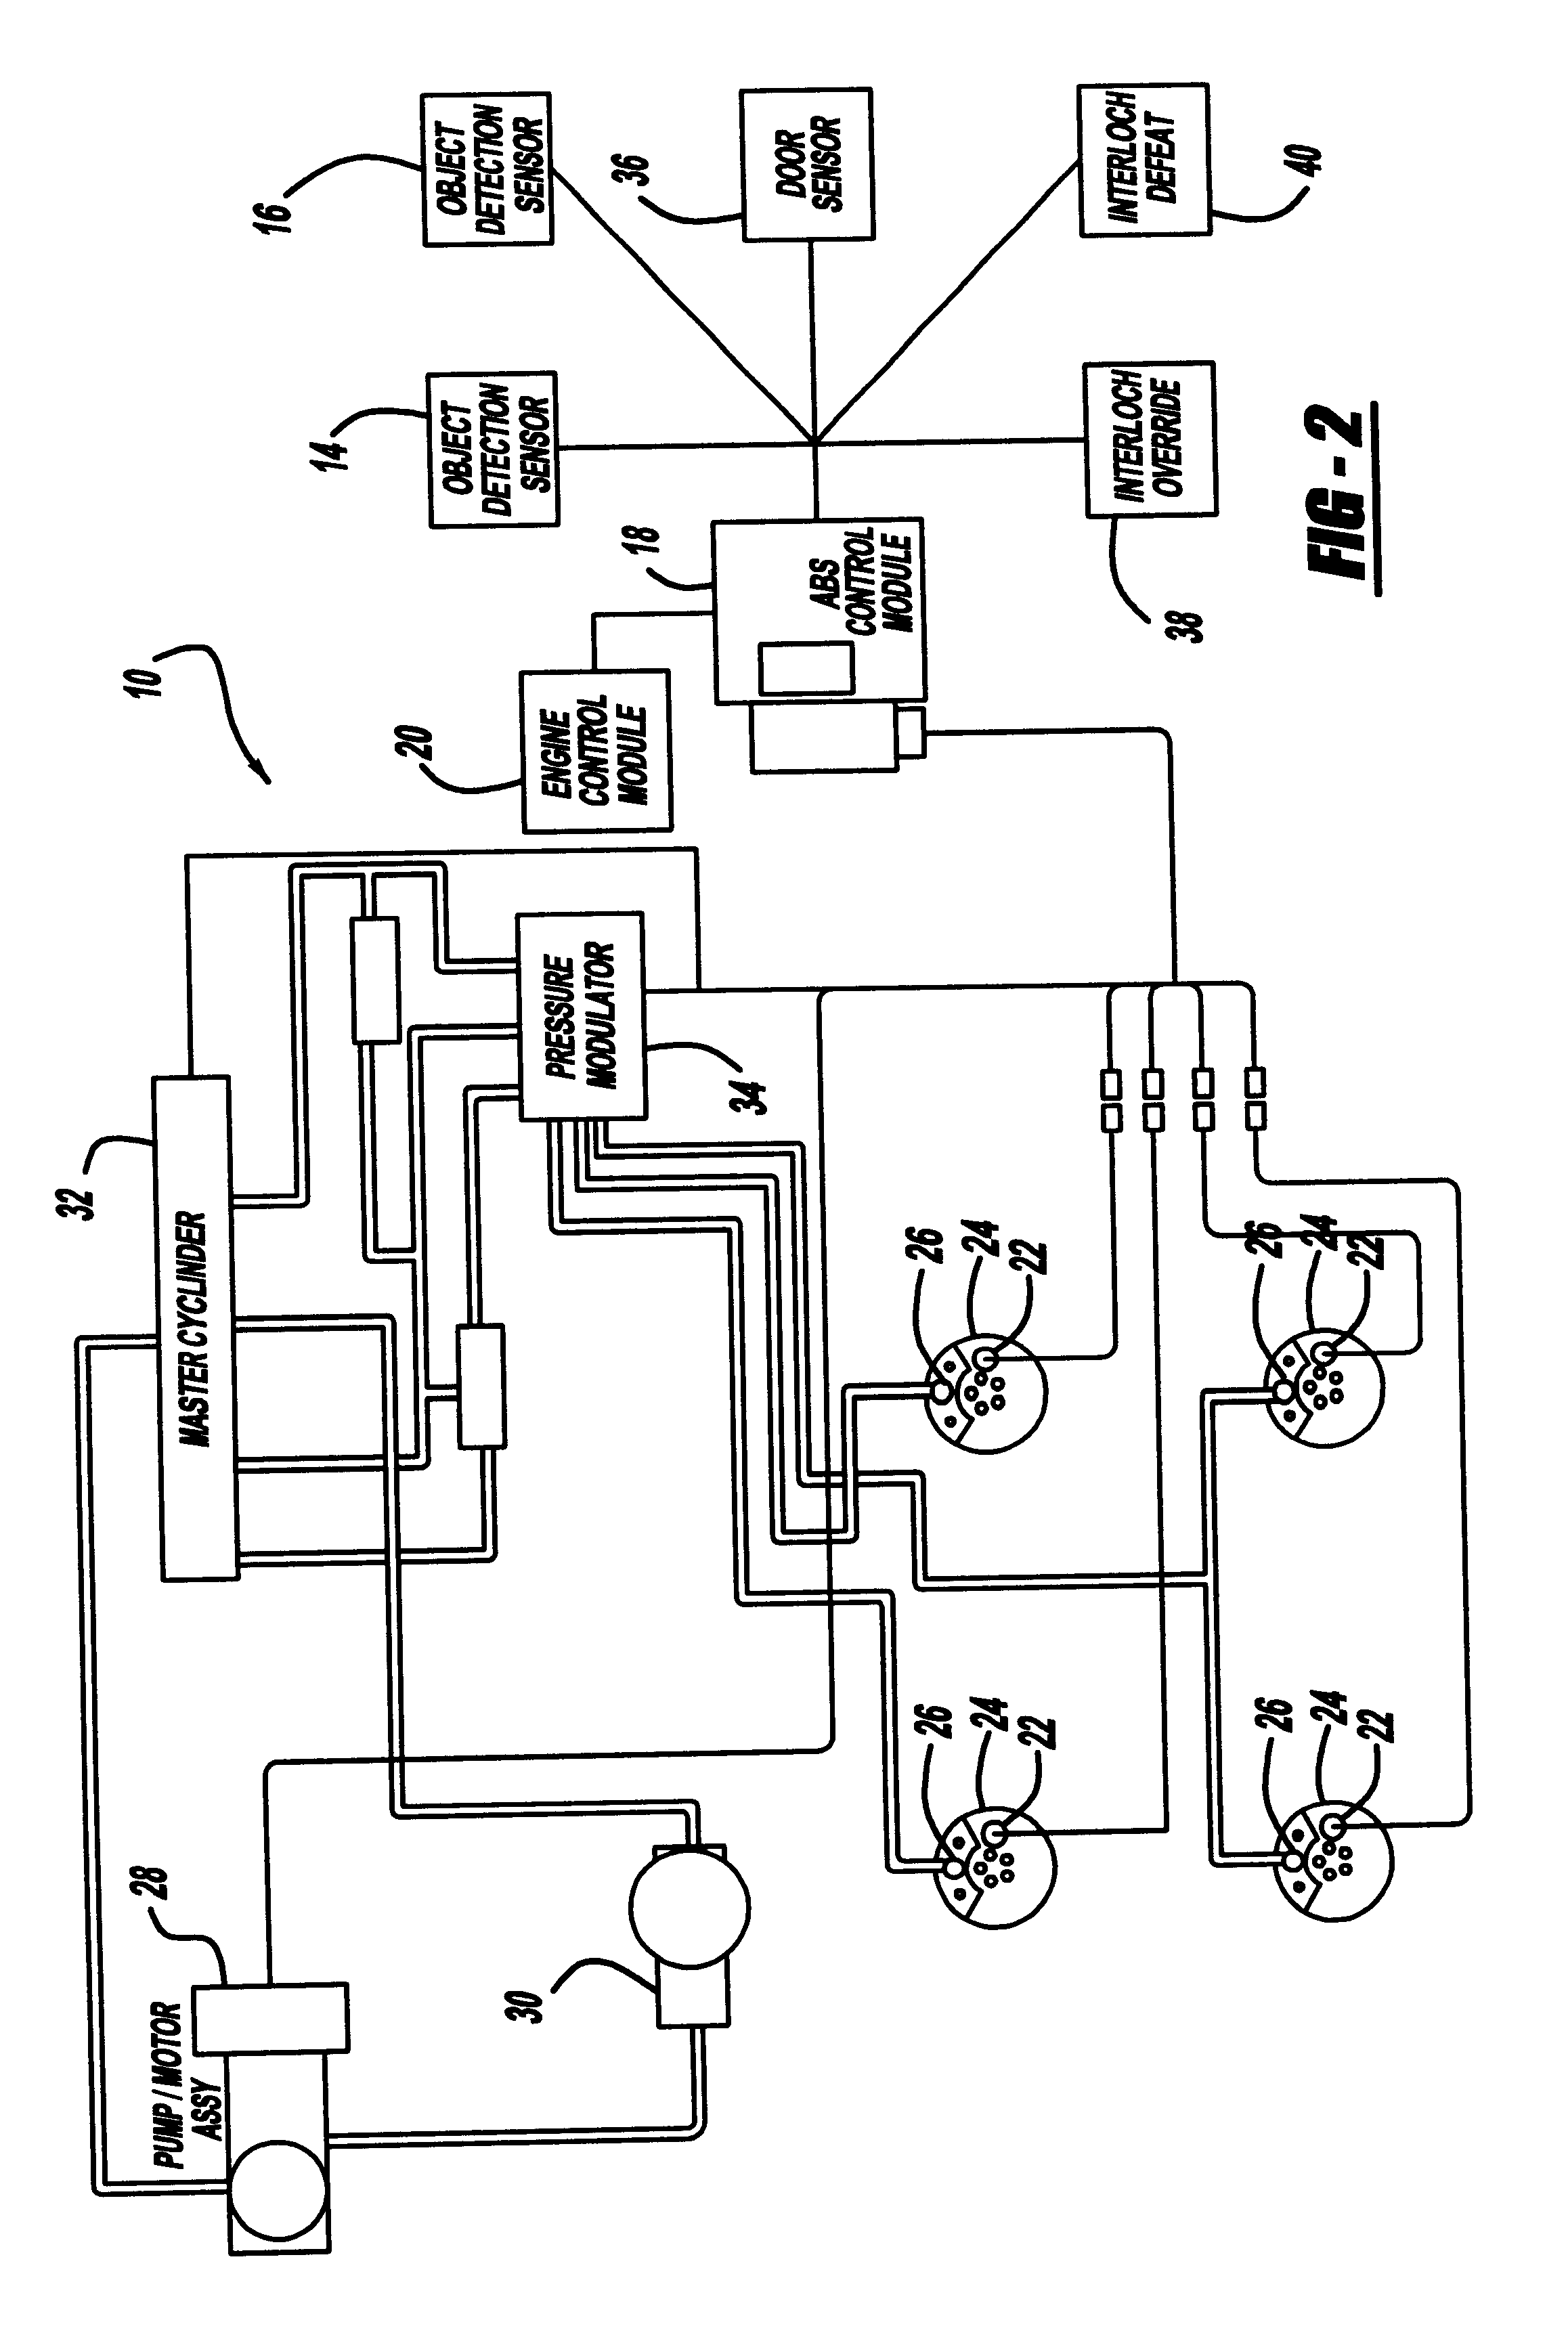 DIAGRAM] 1994 Bluebird Bus Wiring Diagram FULL Version HD Quality Wiring  Diagram - MAMI-DIAGRAM.RADD.FRDiagram Database - Radd